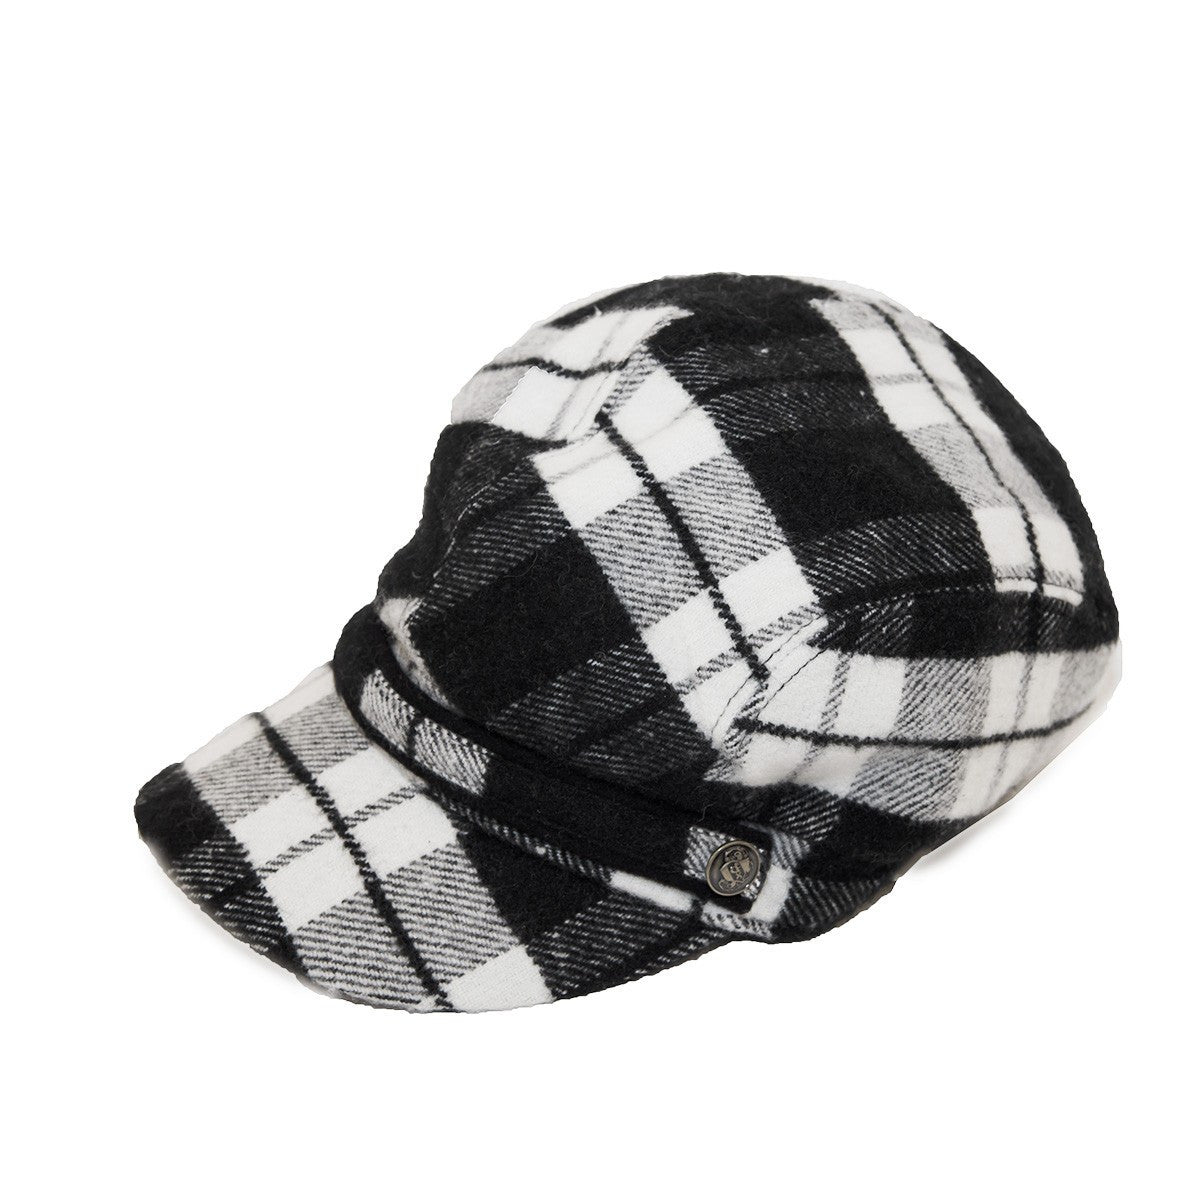 Black & White Plaid Cap by Roots, Canada, Hat Size 7 1/2